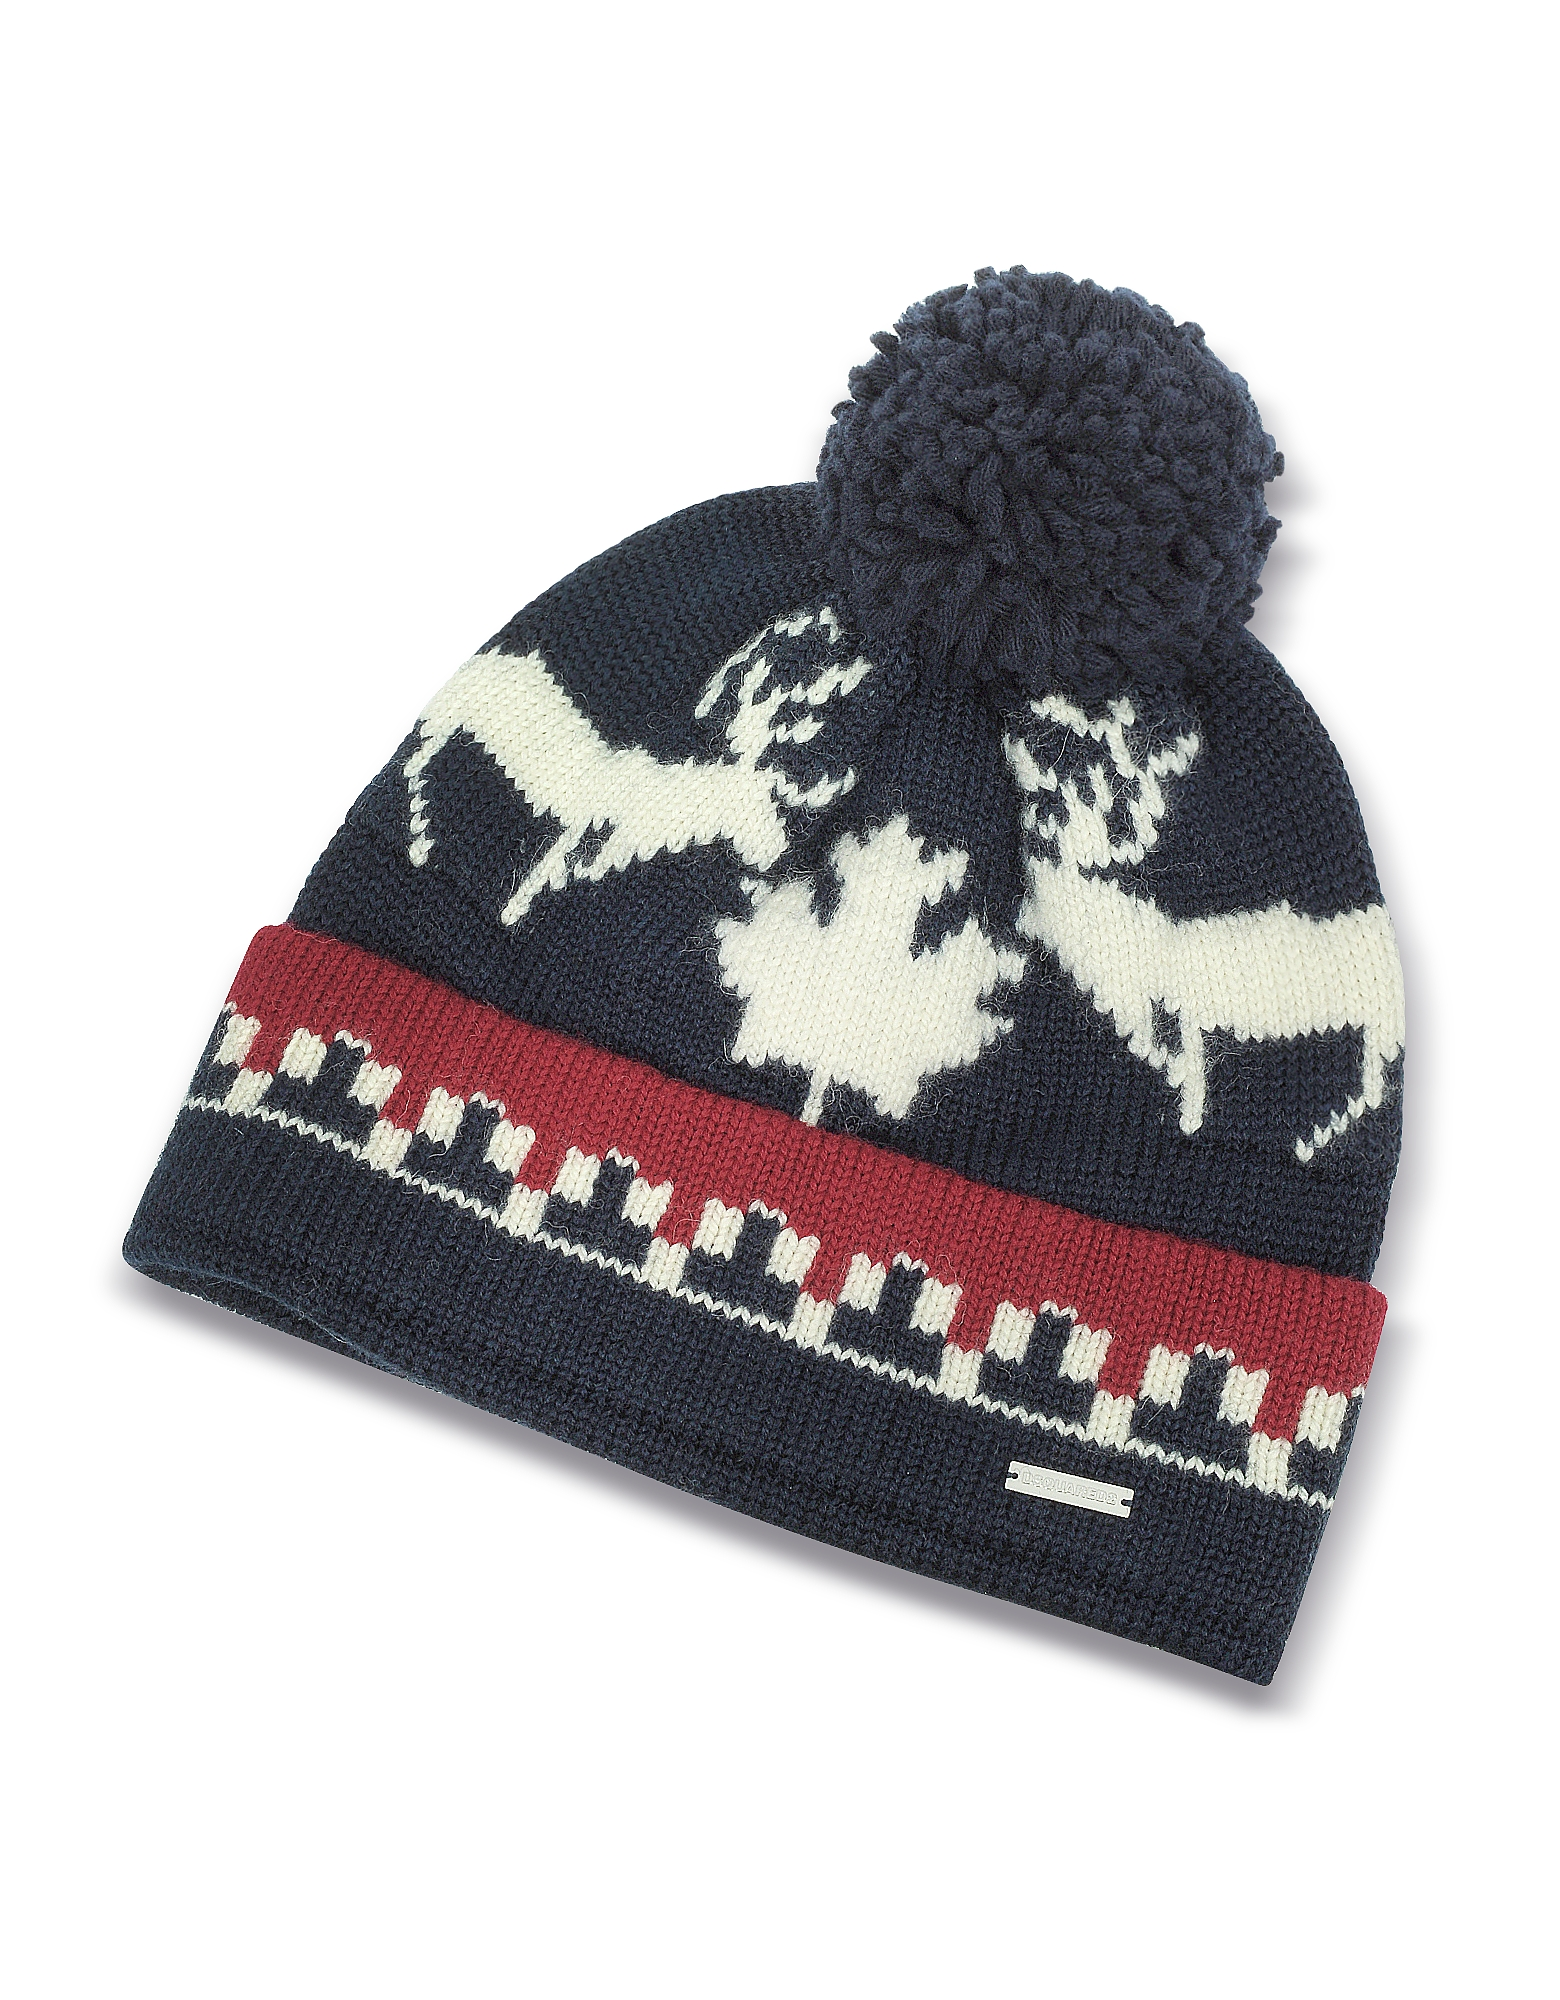 Nordic Deers Navy Blue and Burgundy Wool Blend Knit Hat w/Pom Pom от Forzieri.com INT